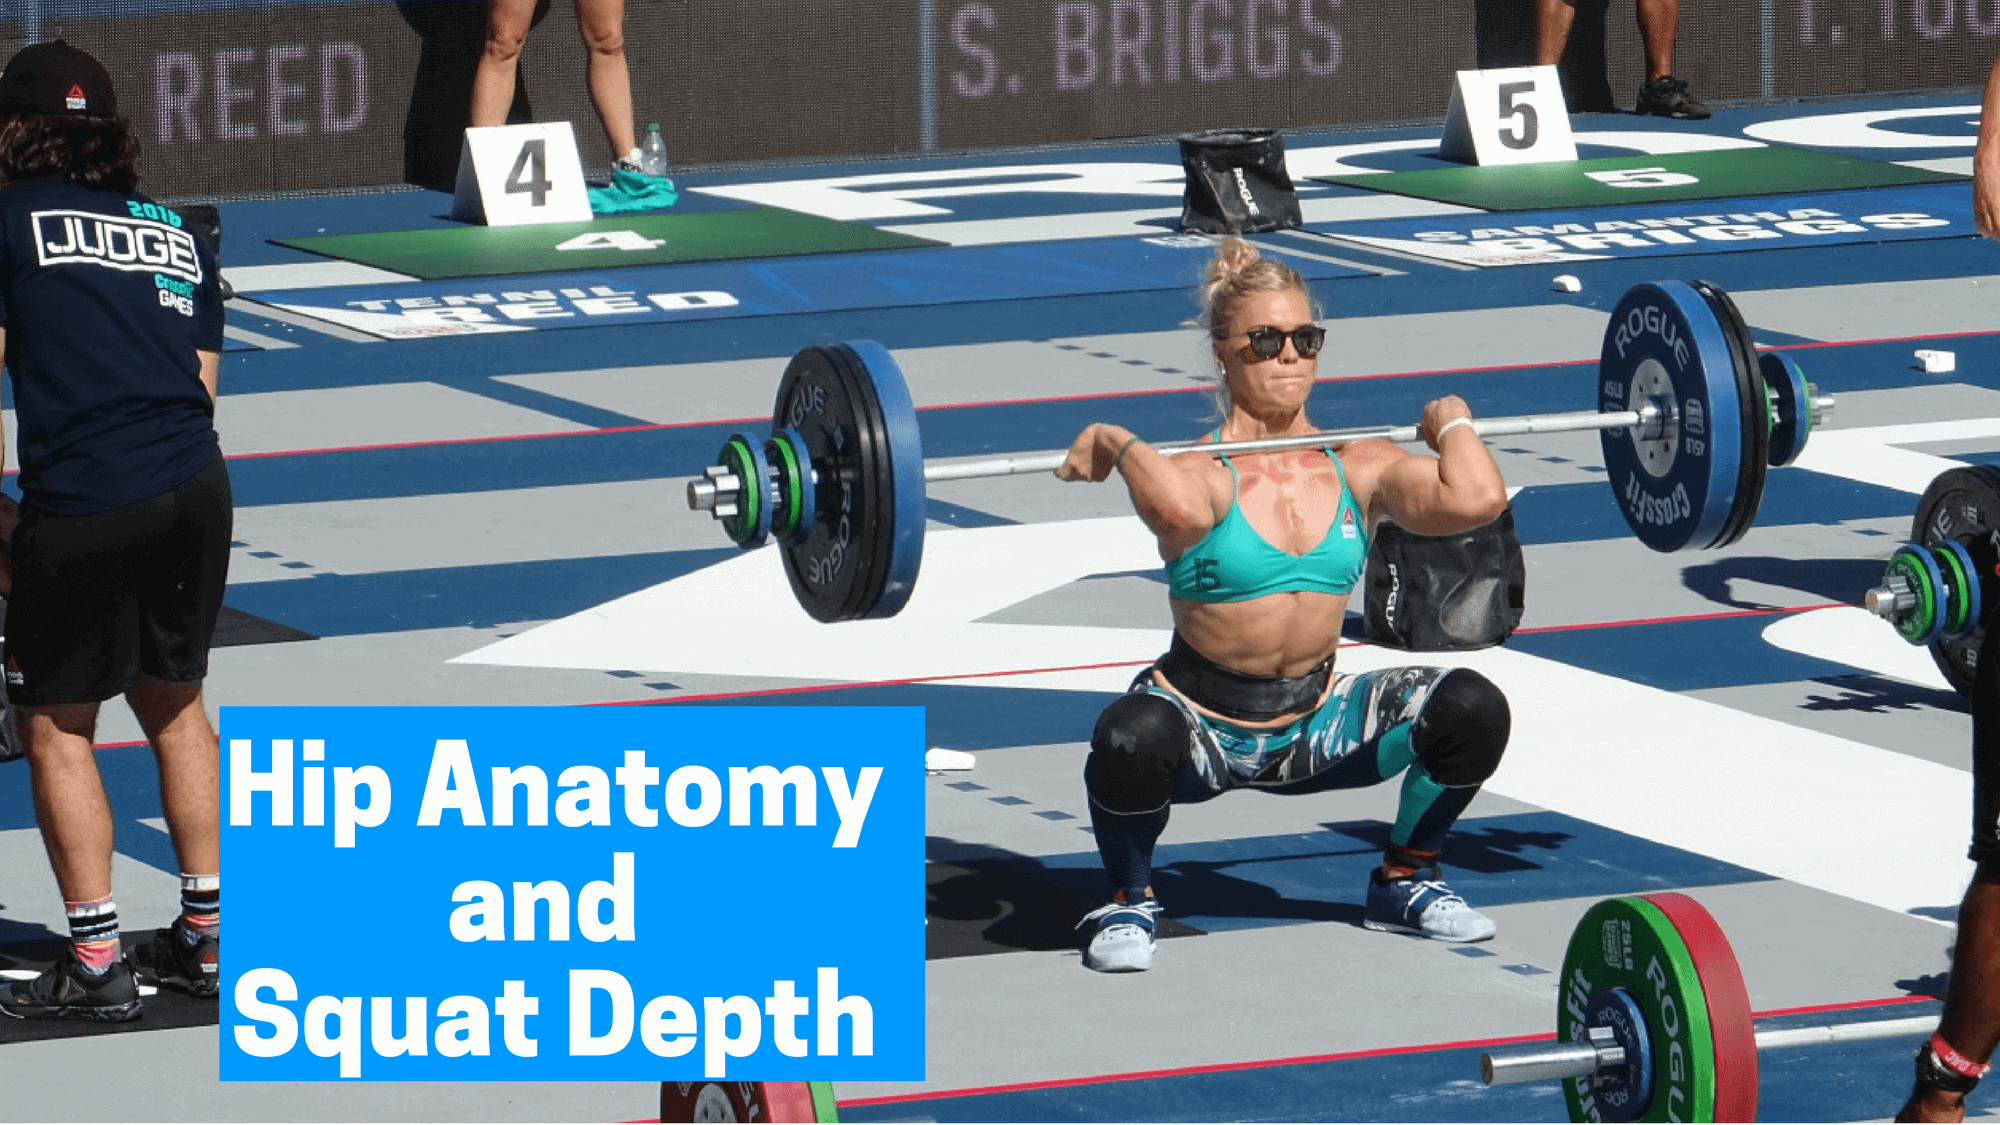 Hip anatomy and squat depth